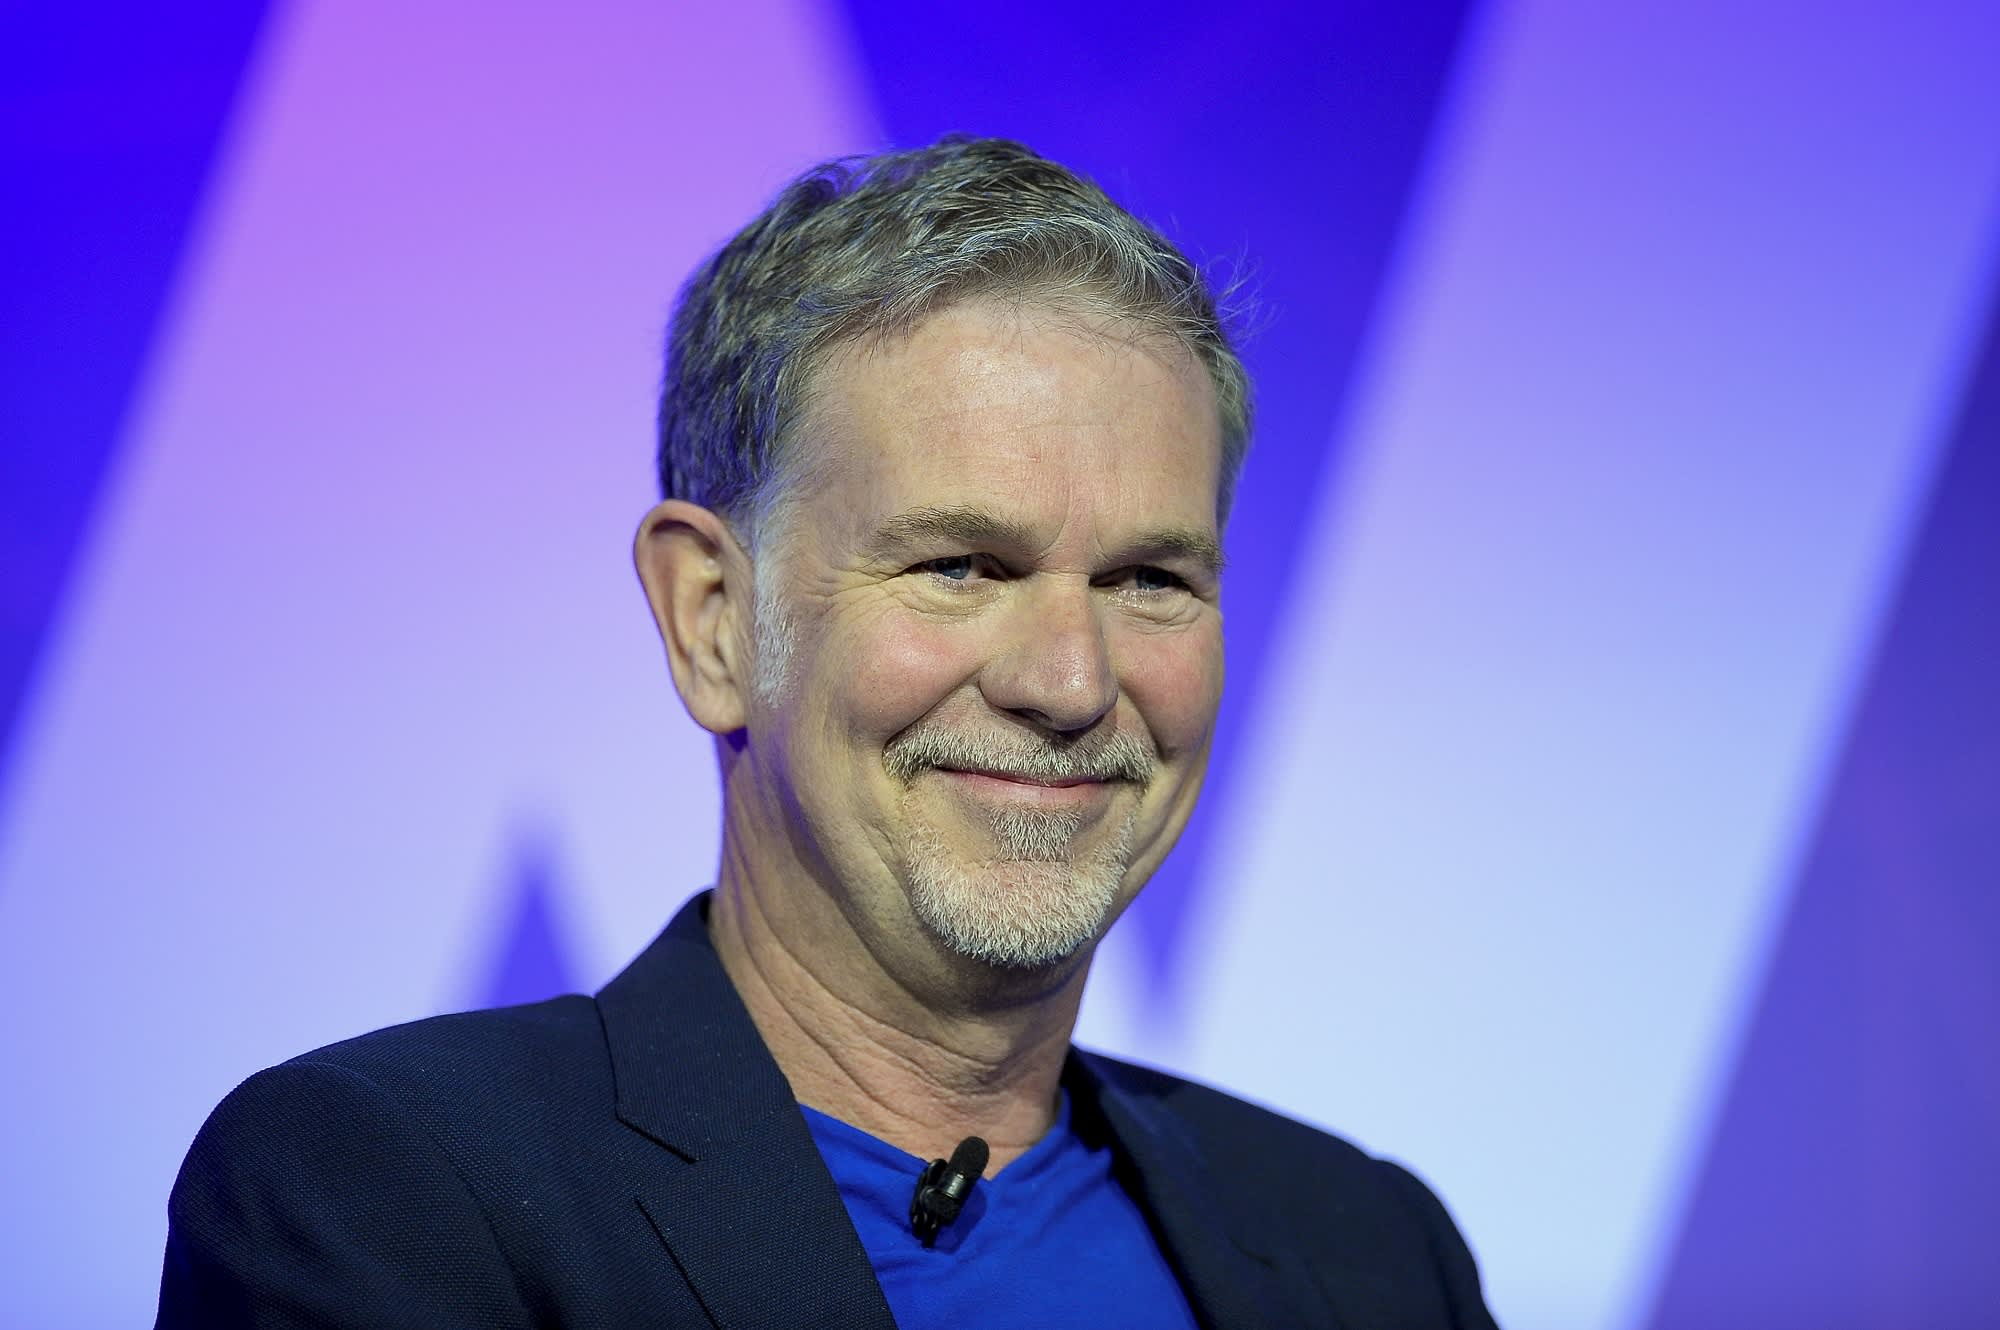 Netflix CEO says the 'streaming wars' are good for business